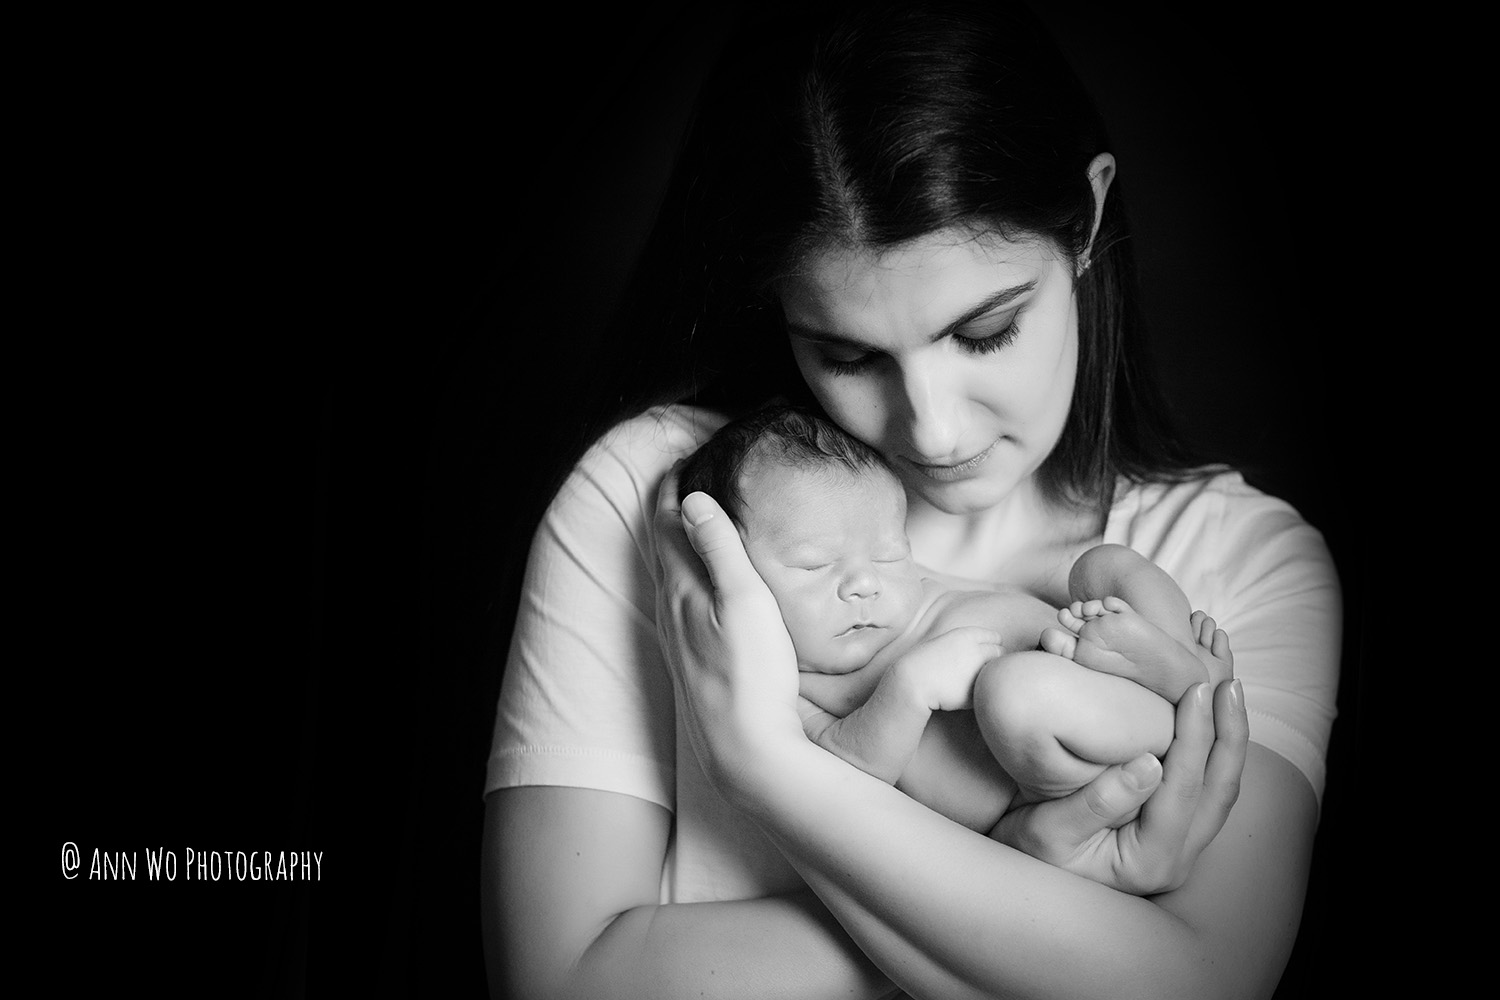 newborn-baby-photography-at-home-studio-set-up-Ann-Wo-London-bulldog-16.jpg